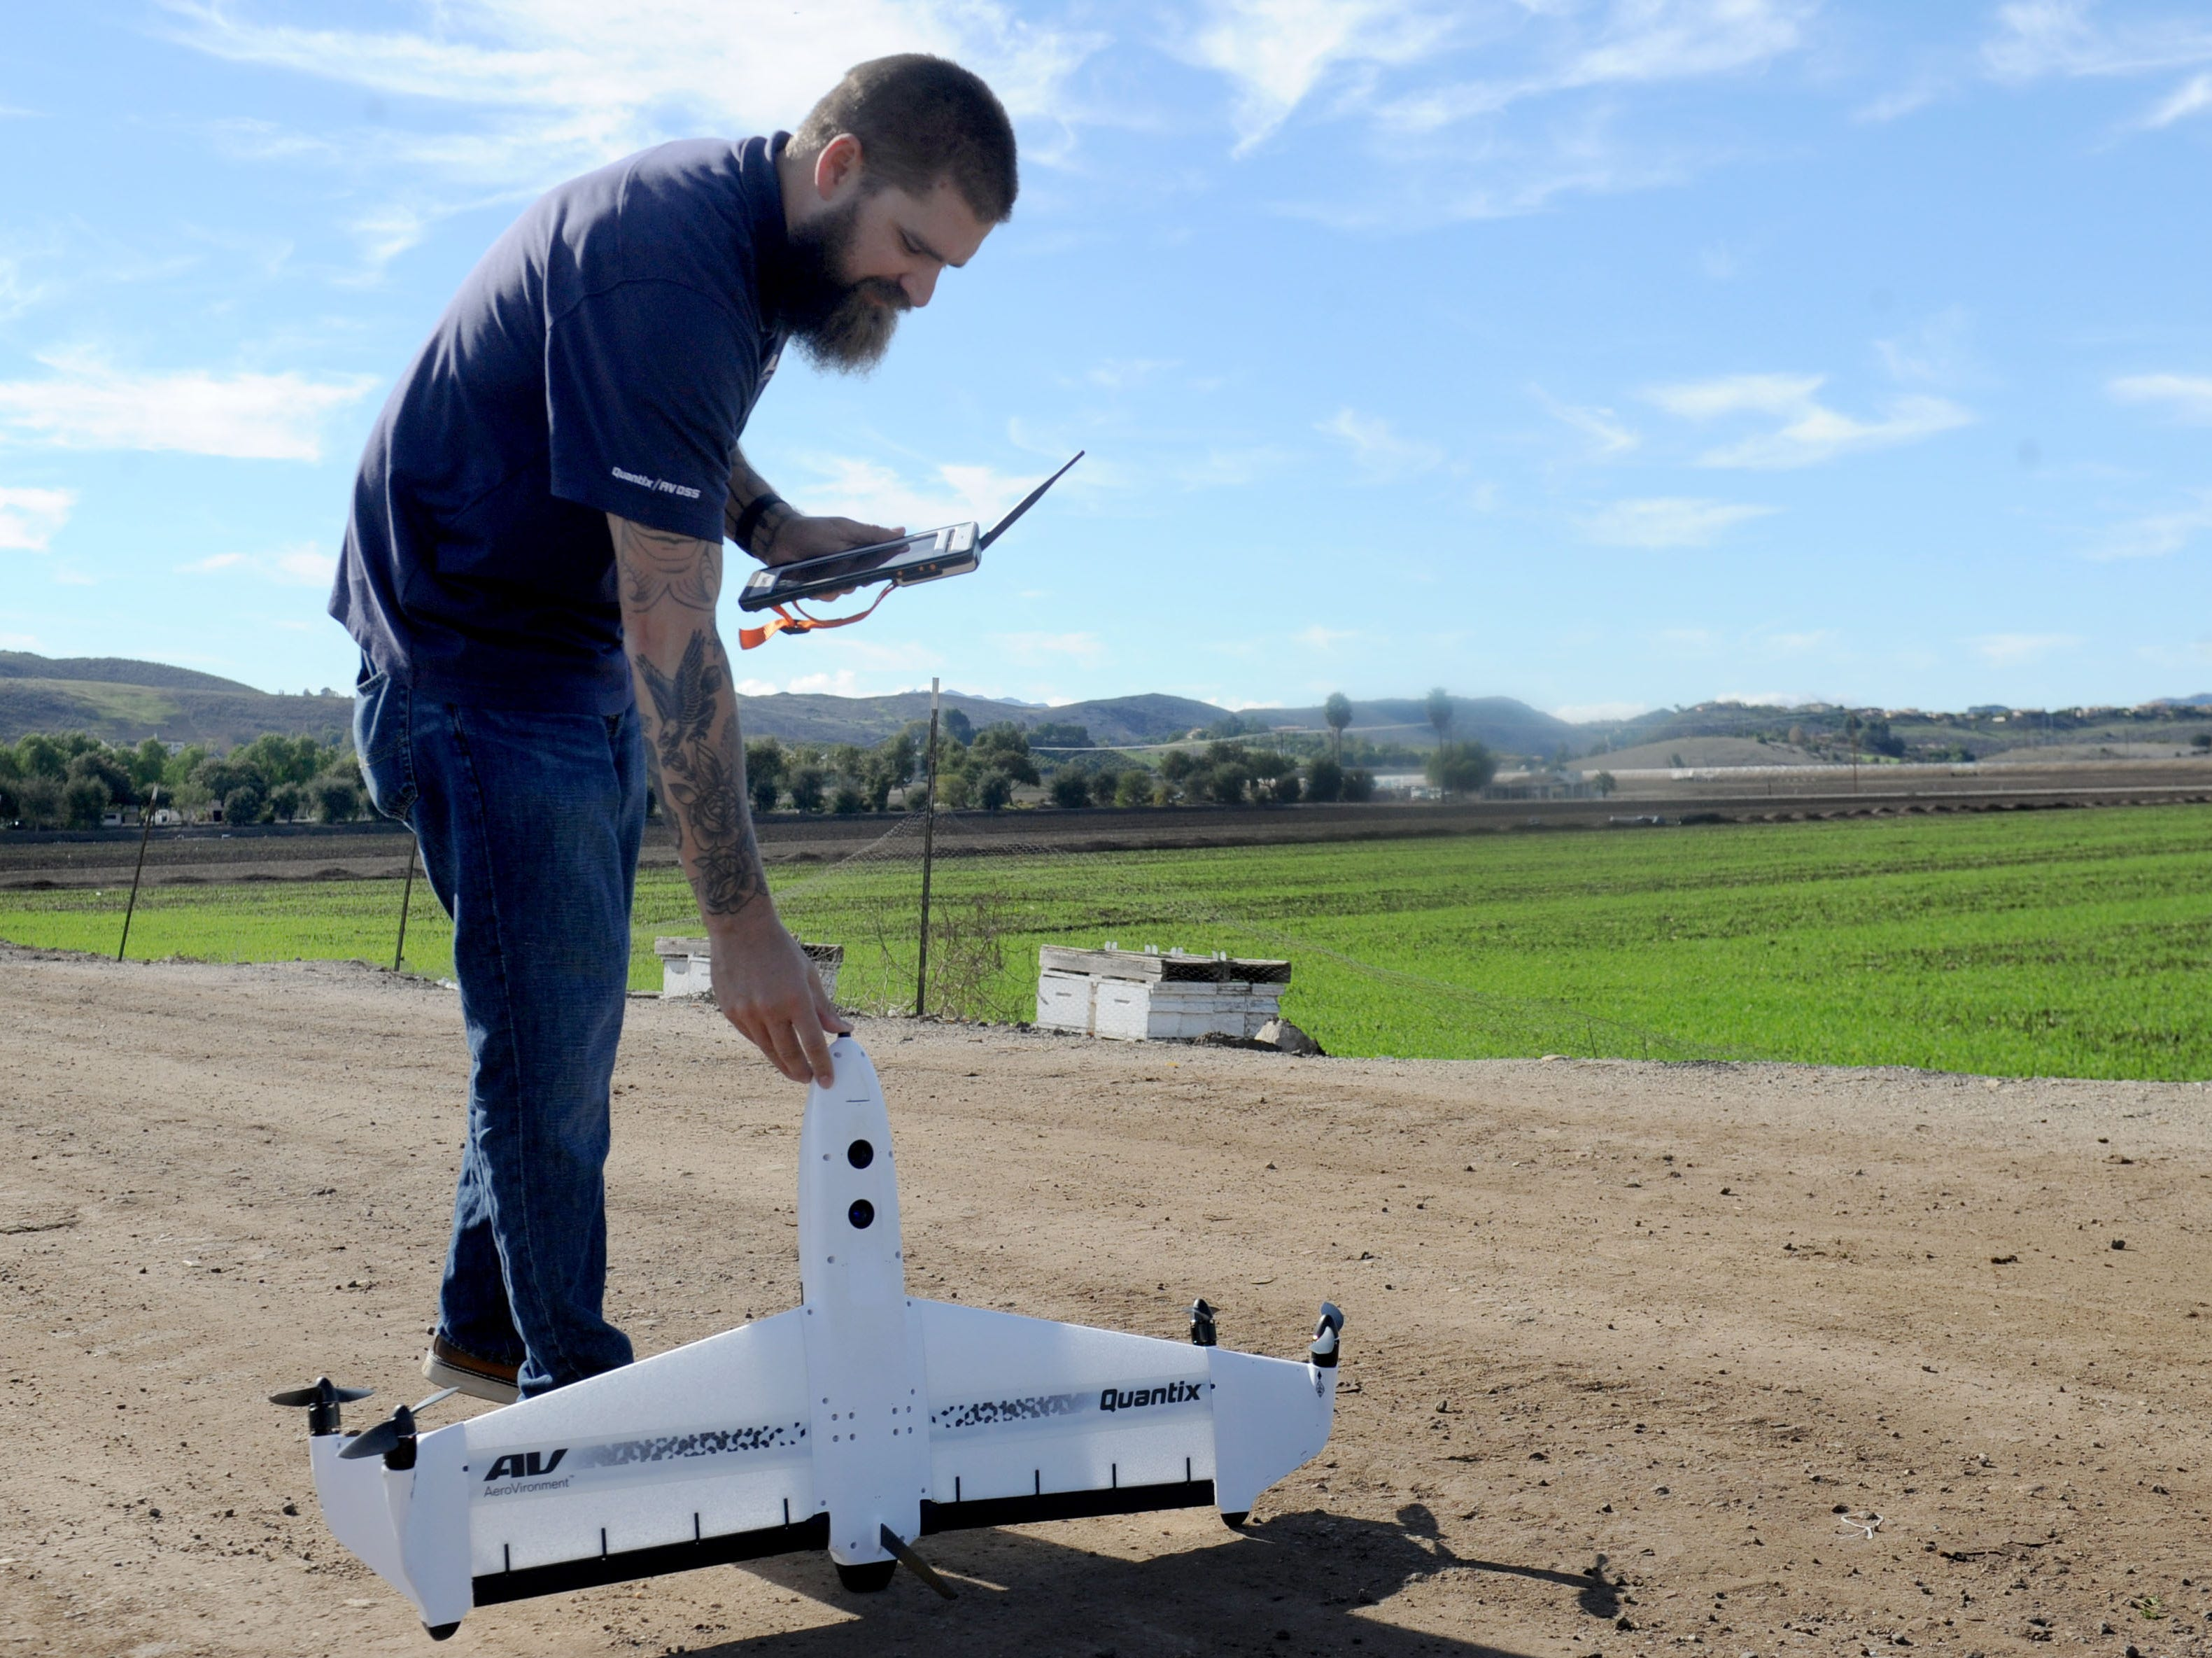 Eric Thompson, flight operations manager commercial information solutions for AeroVironment, gets ready to fly the Quantix drone on a open field in Moorpark. The Quantix is AeroVironment's first commercially available drone.